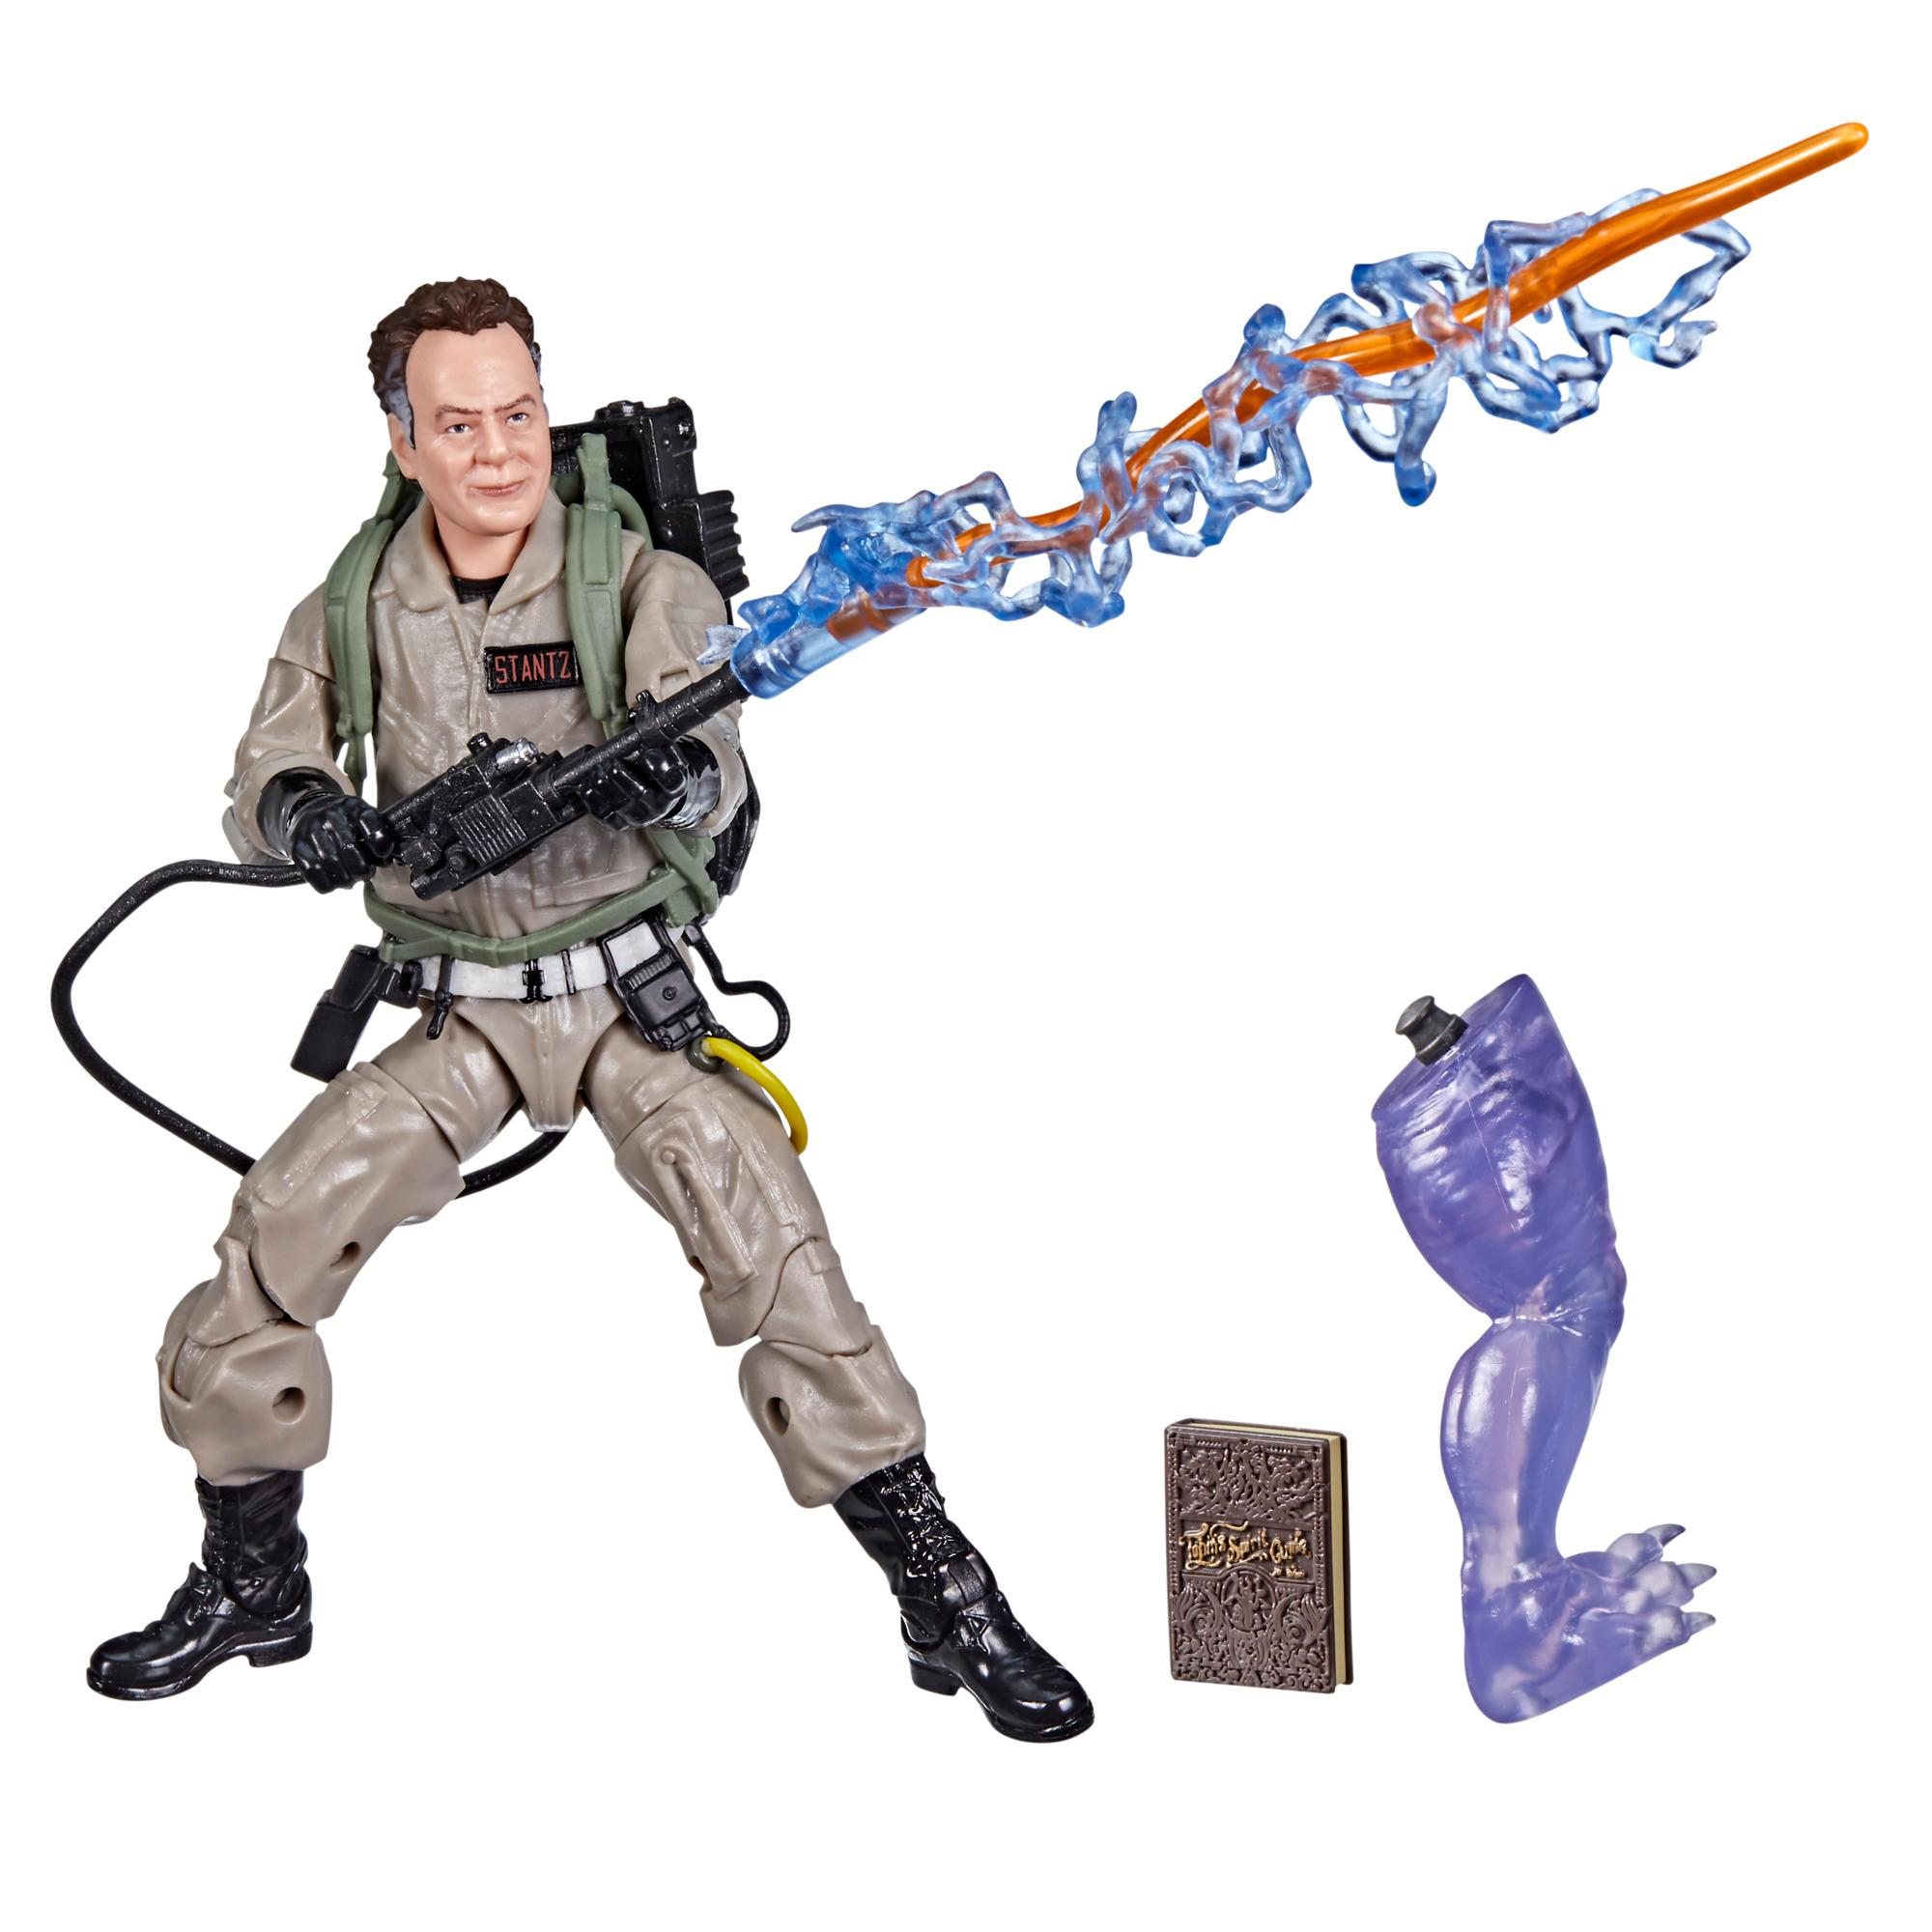 Ghostbusters Plasma Series Ray Stantz Toy 6-Inch-Scale Collectible Ghostbusters: Afterlife Figure, Ages 4 and Up